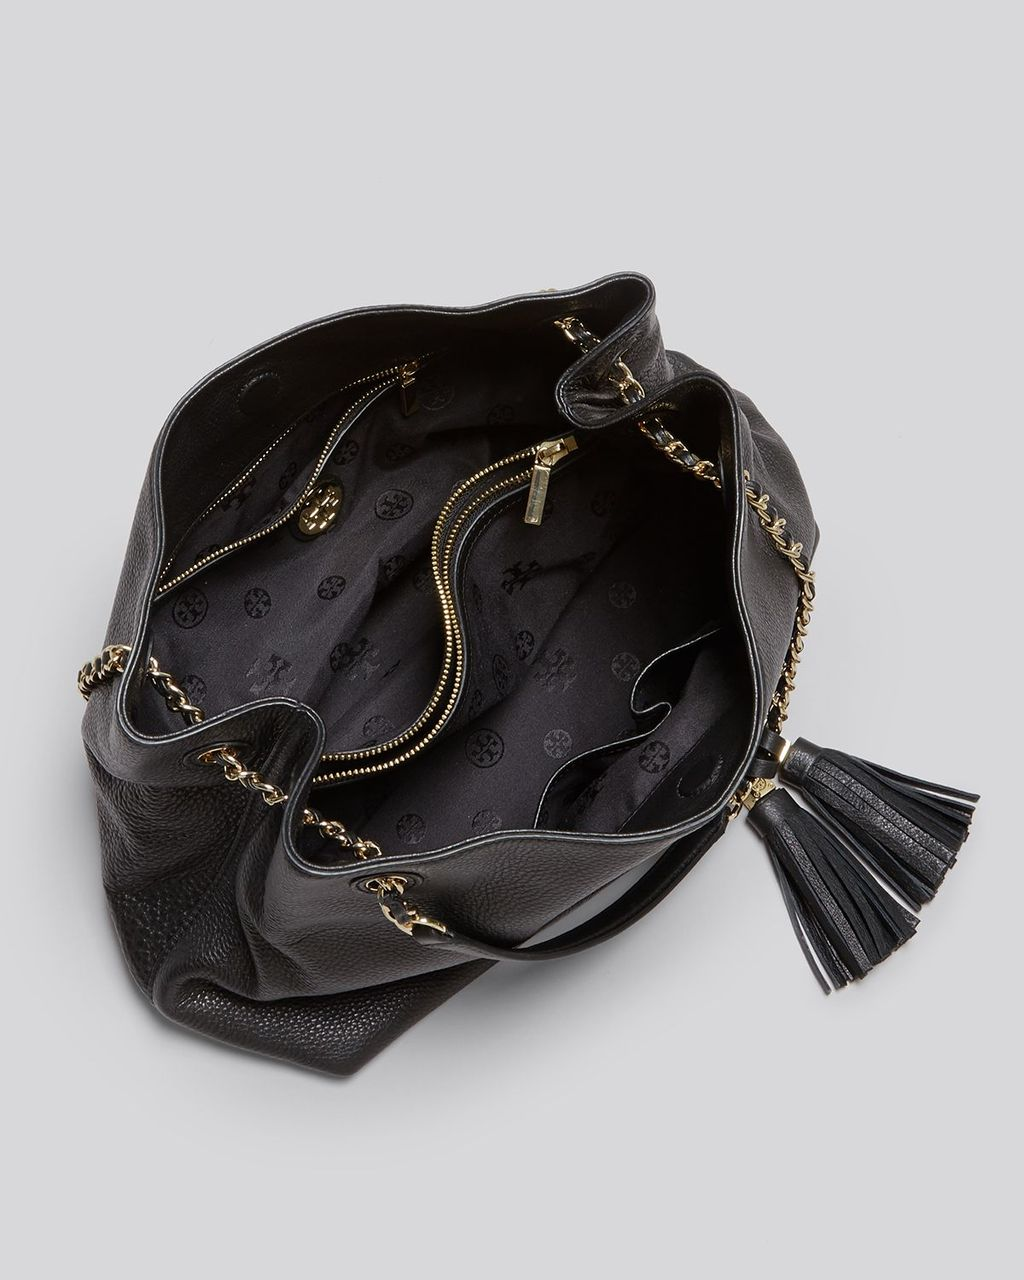 tory-burch-black-tote-thea-chain-shoulder-slouchy-product-1-20452410-3-930399347-normal.jpeg